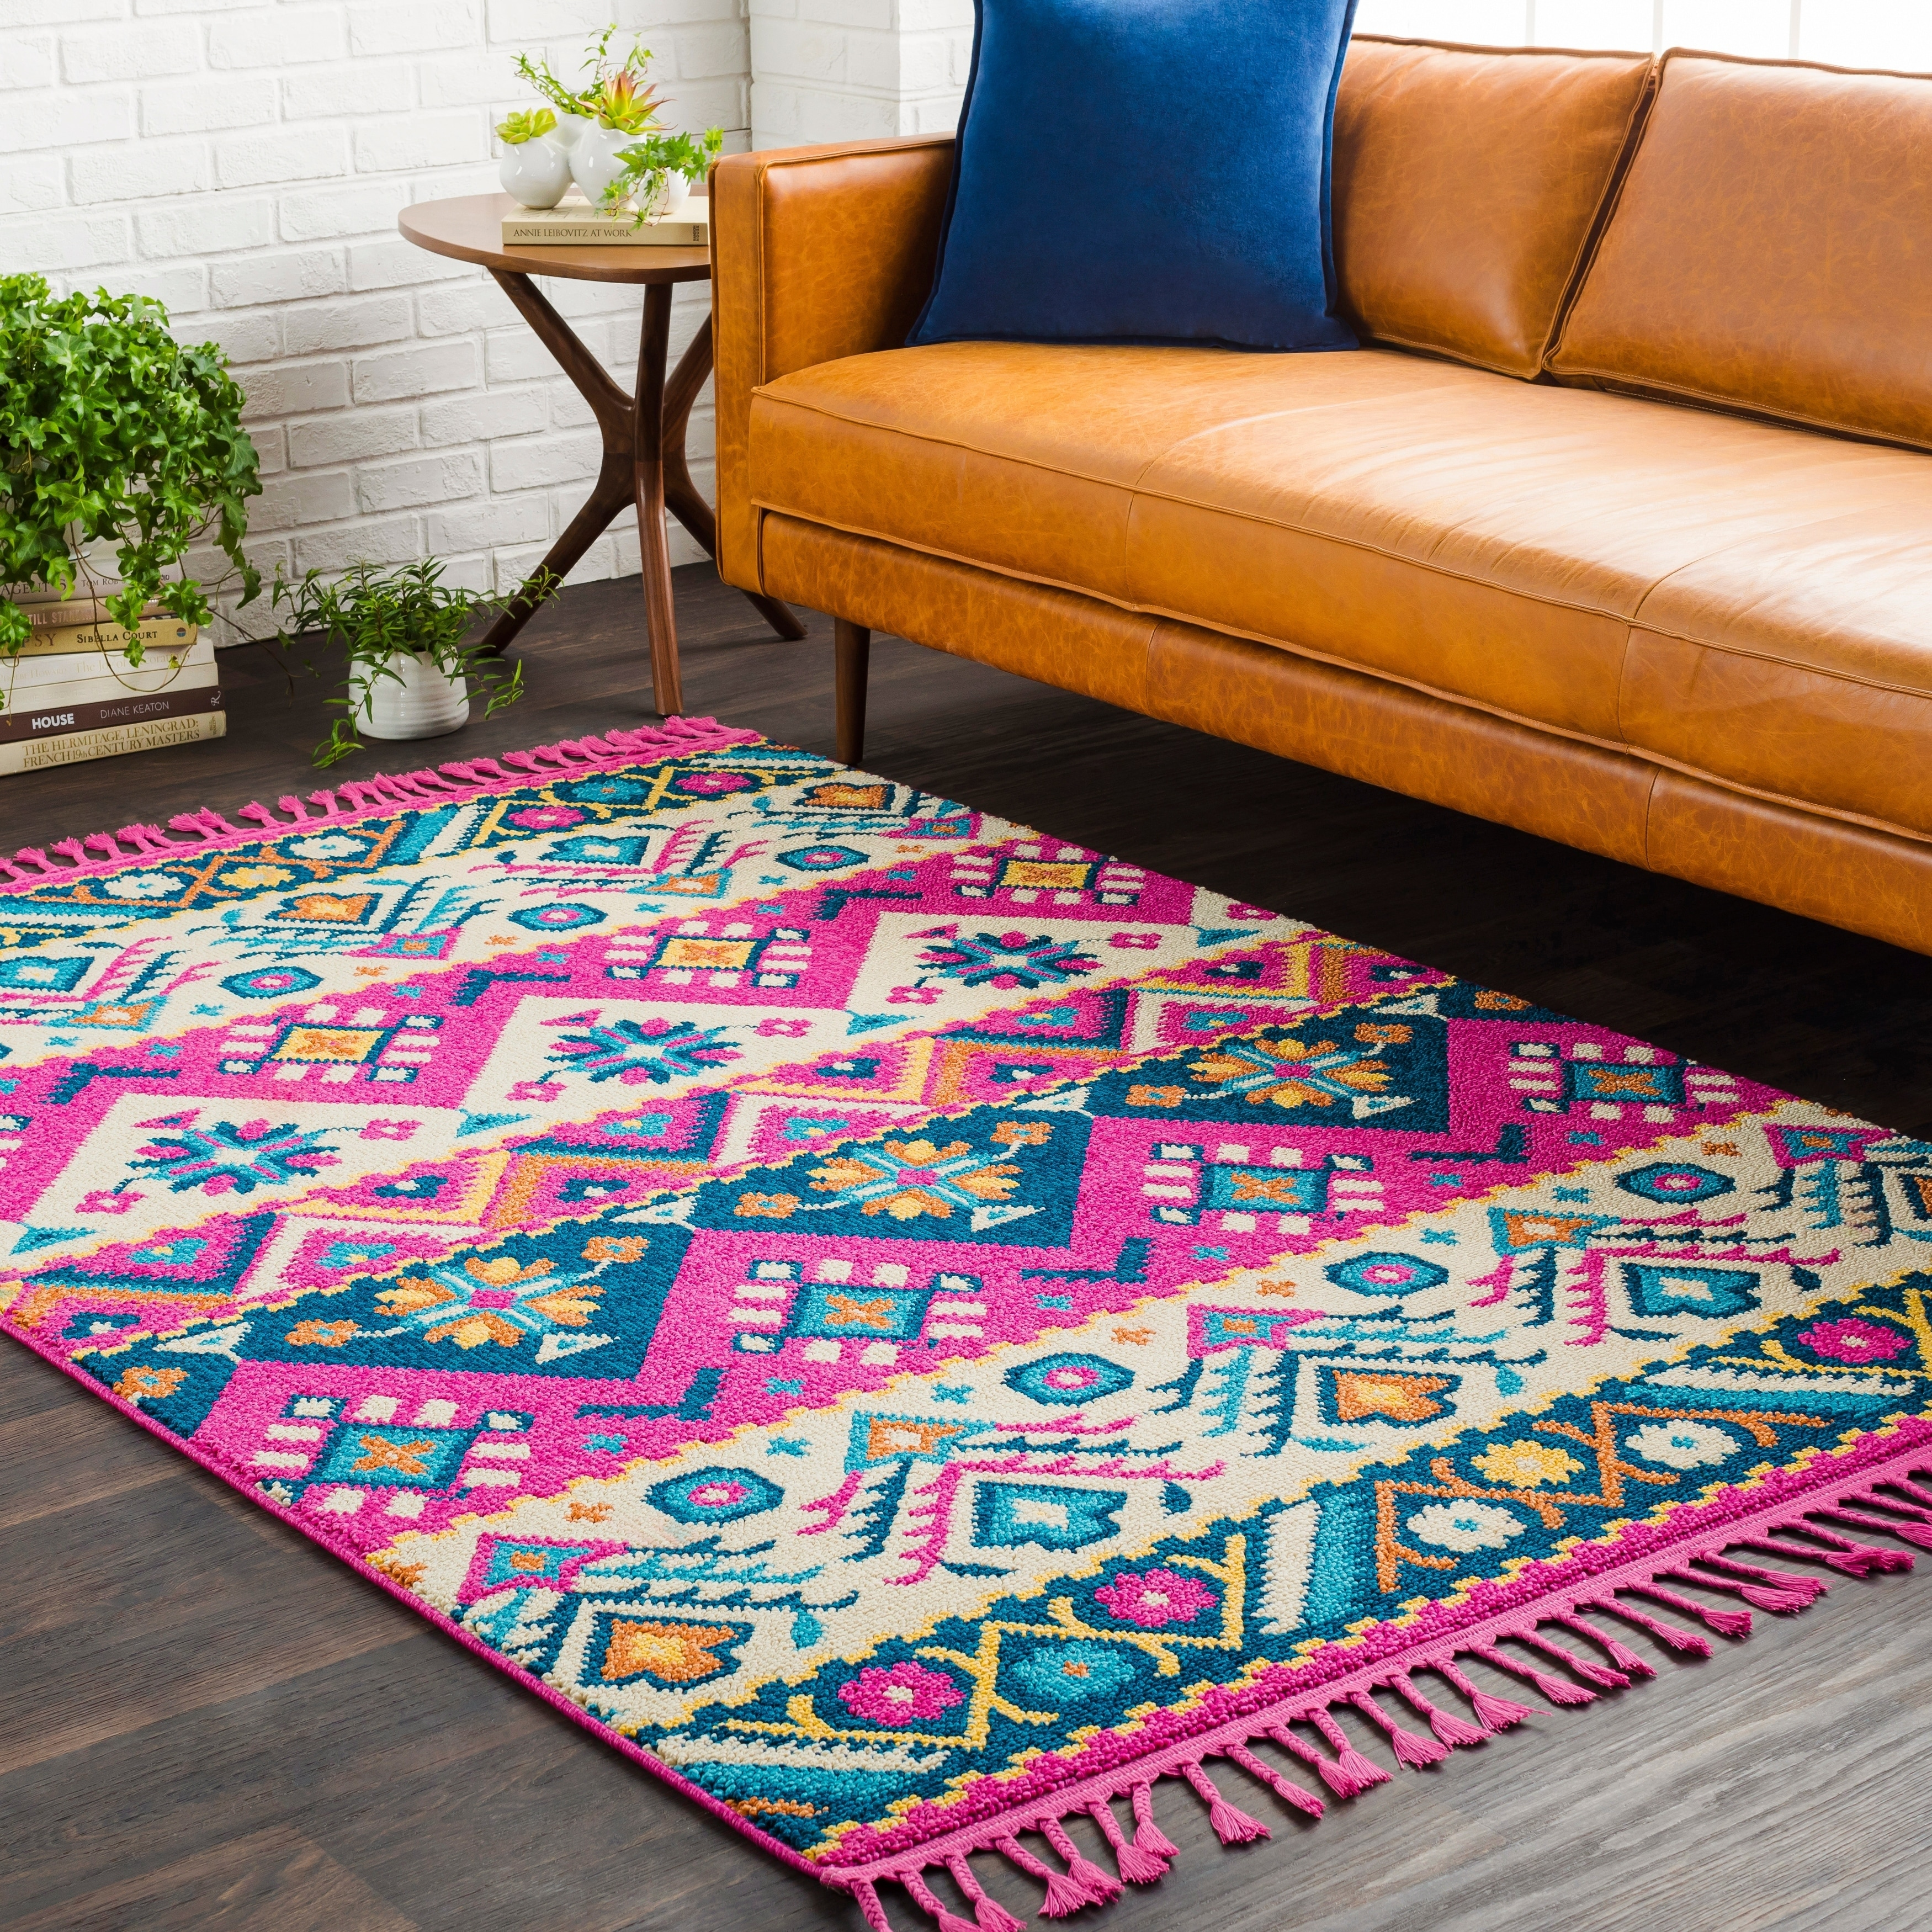 Picture of: Boho Bright Pink Blue Southwestern Tassel Area Rug 9 3 X 12 1 9 3 X 12 1 On Sale Overstock 18100074